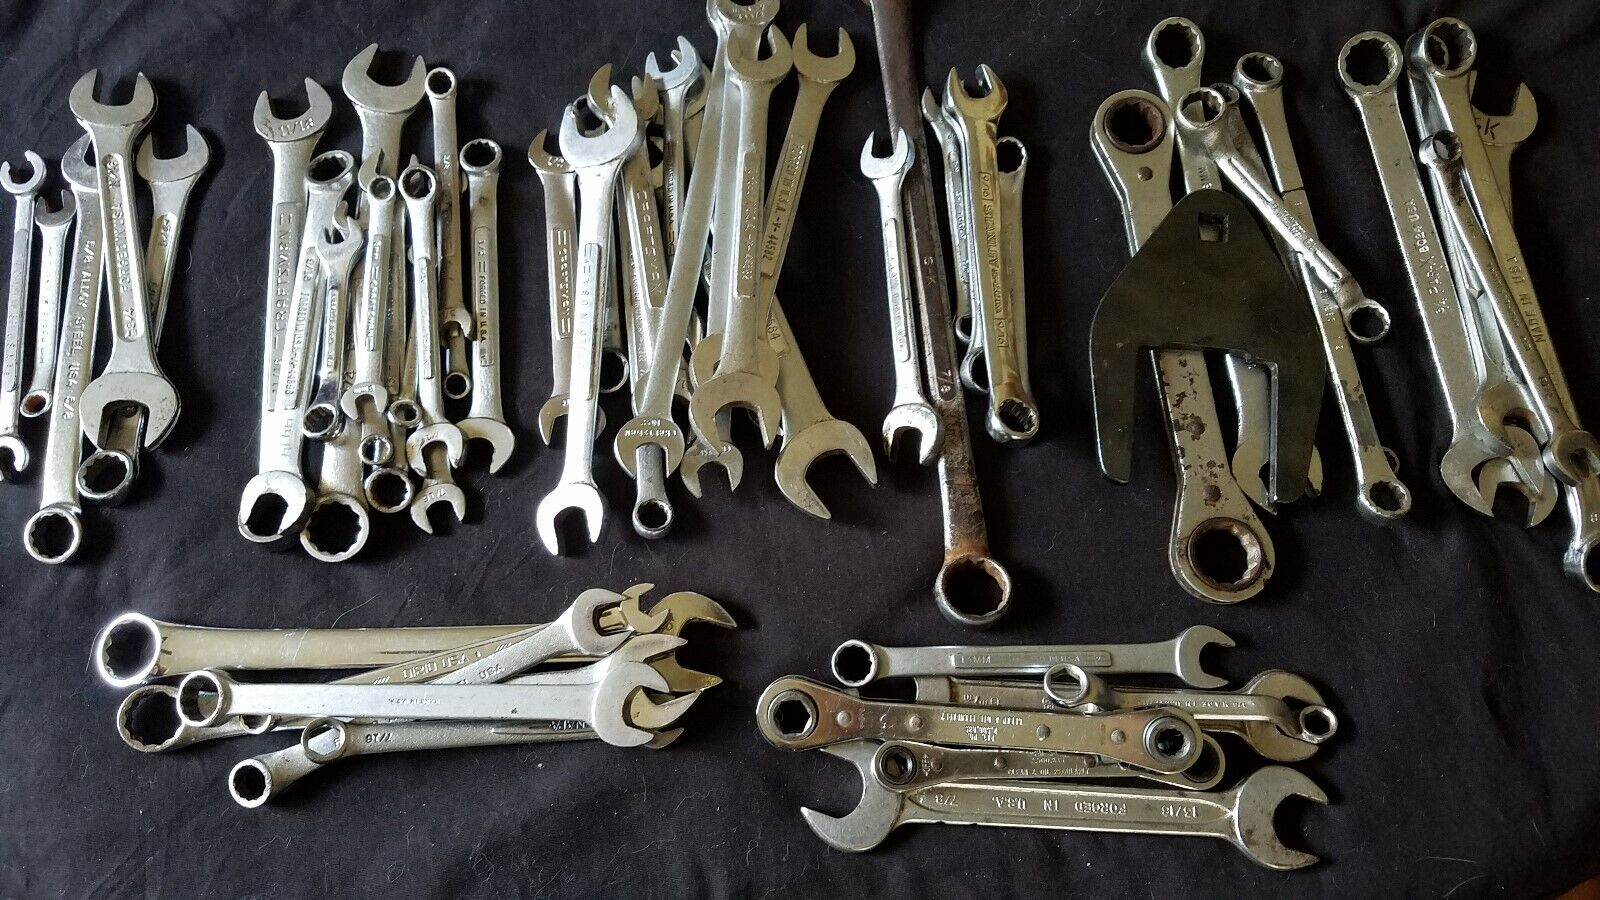 Used USA Made Wrenches Blackhawk Craftsman S&K others  Pick & Choose